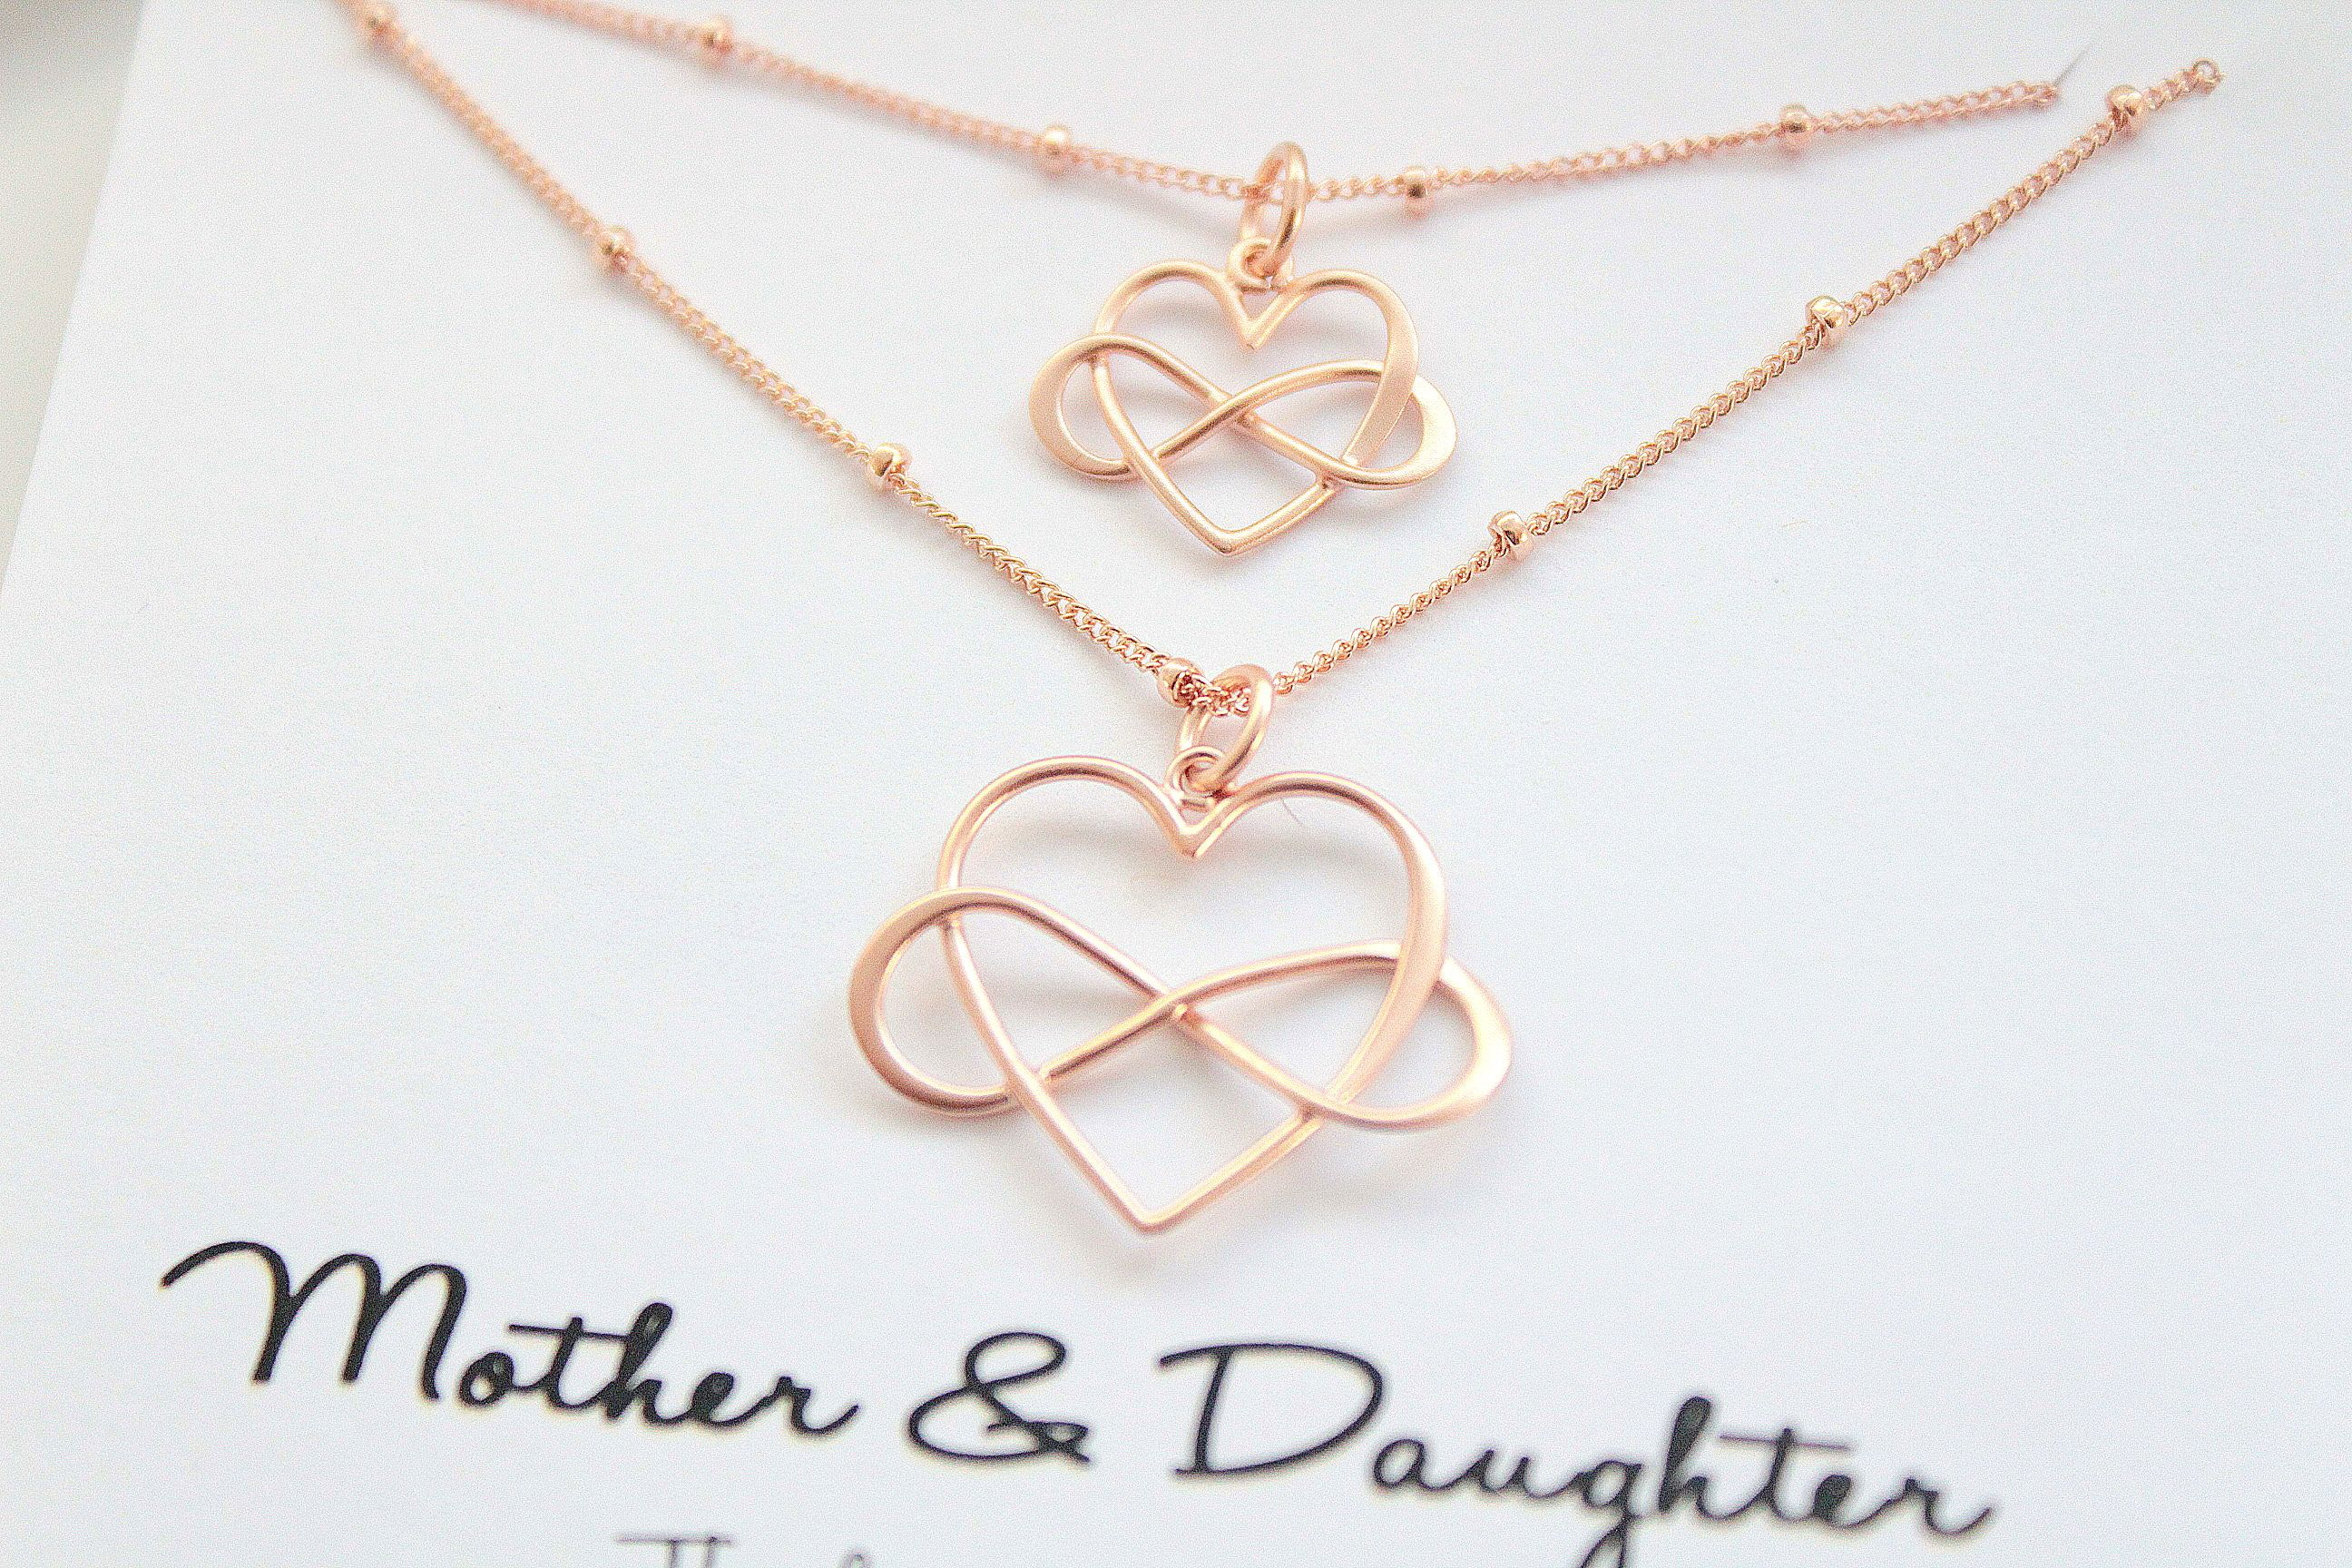 Photo of Mother Daughter necklace rose gold, Mother daughter gift, infinity Heart Necklace, set of 2, Mom necklace, Mother daughter jewelry